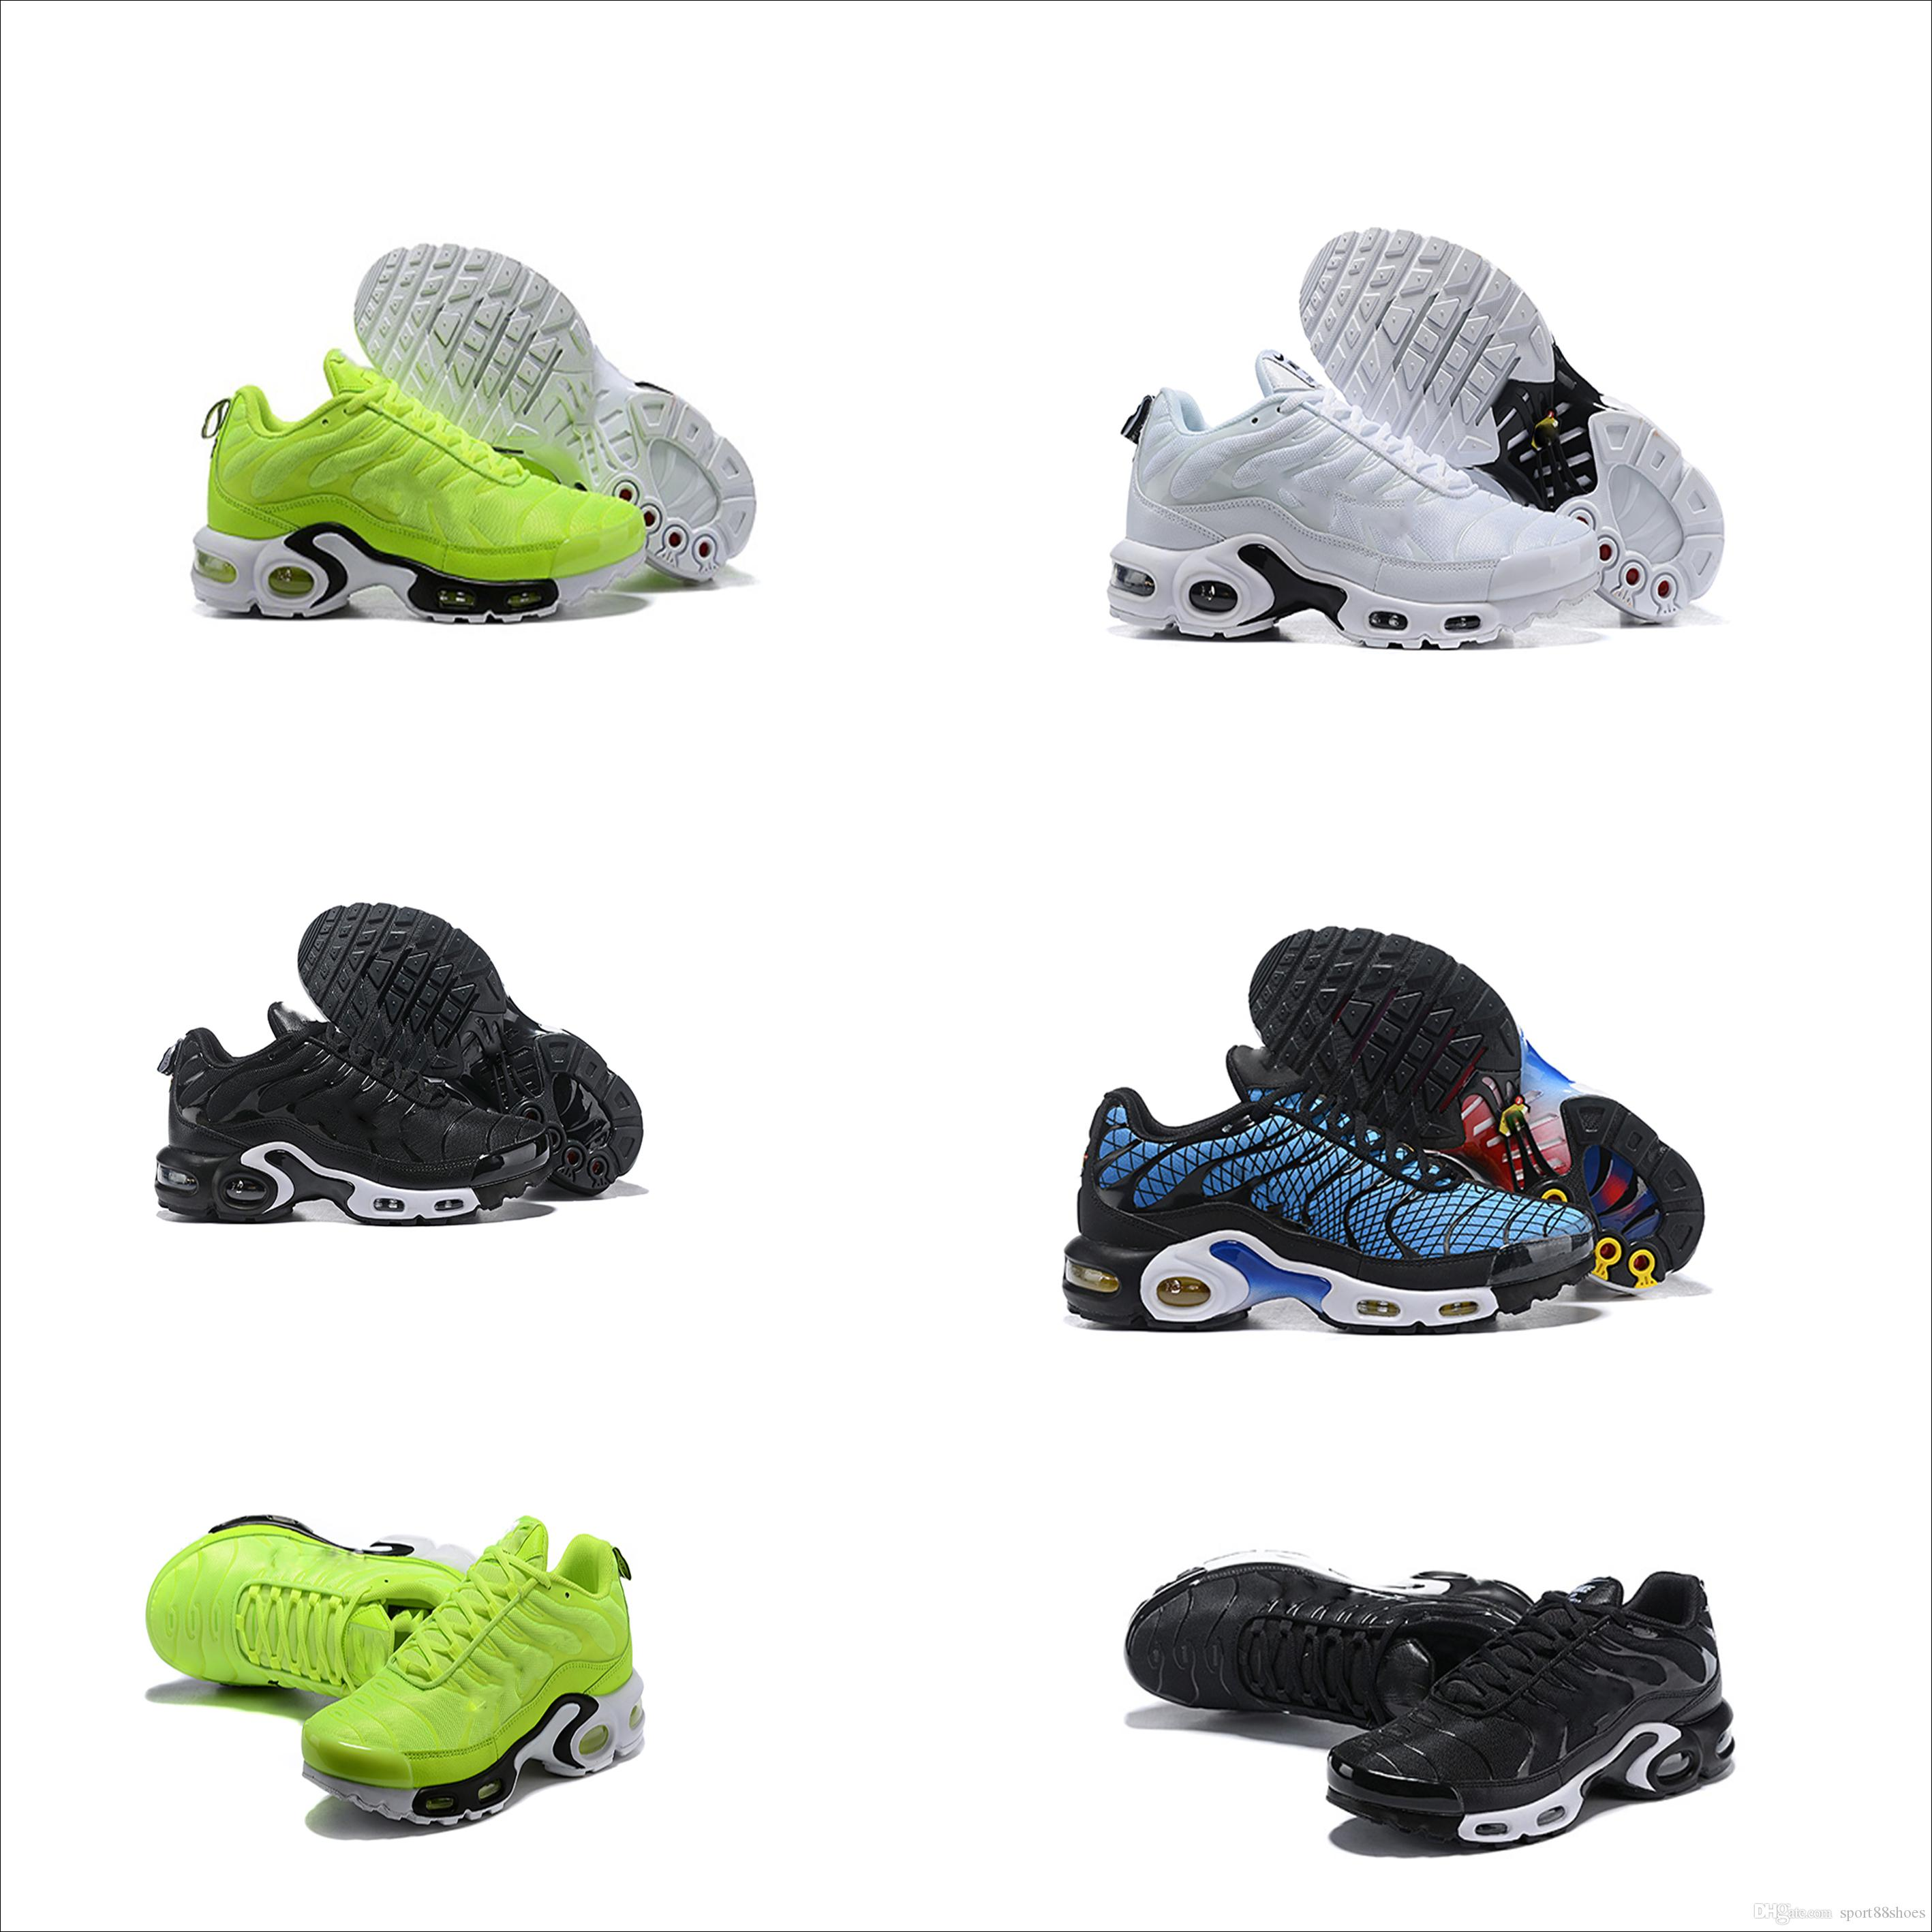 875e07a1fa3697 2019 NEW Tn Plus Greedy Mens Running Shoes OG Plus Tn Black White  Chaussures Tn Homme Prm Sports Rquin Athletic Outdoor Sneaker Barkley Shoes  Shoes Jordans ...